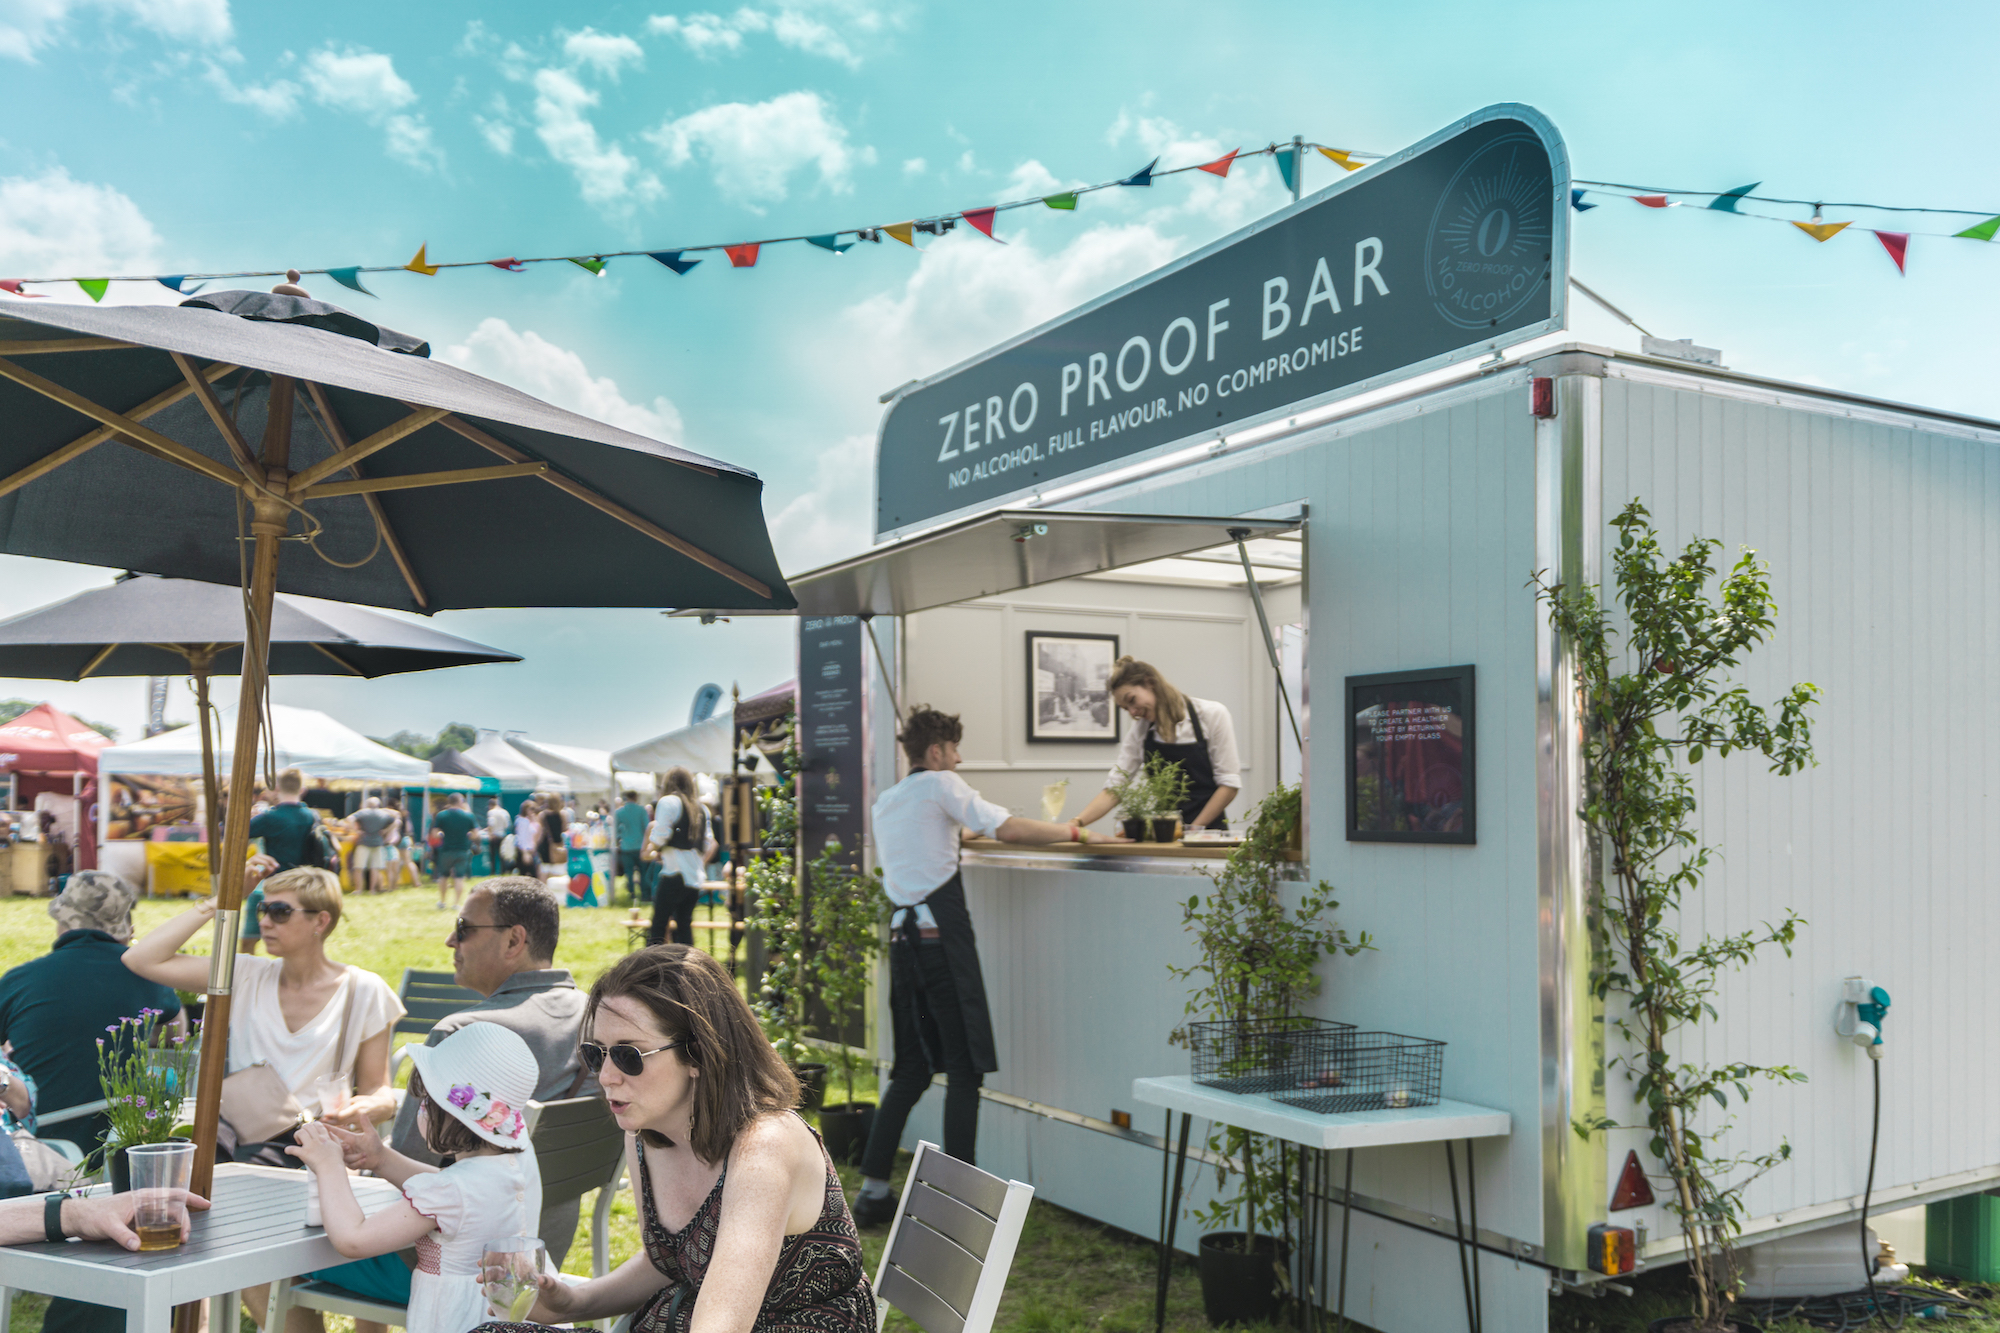 WiseHead Productions Quirky Group Brand Ambassadors in Mobile Bar for Foodies Festival in Syon Park